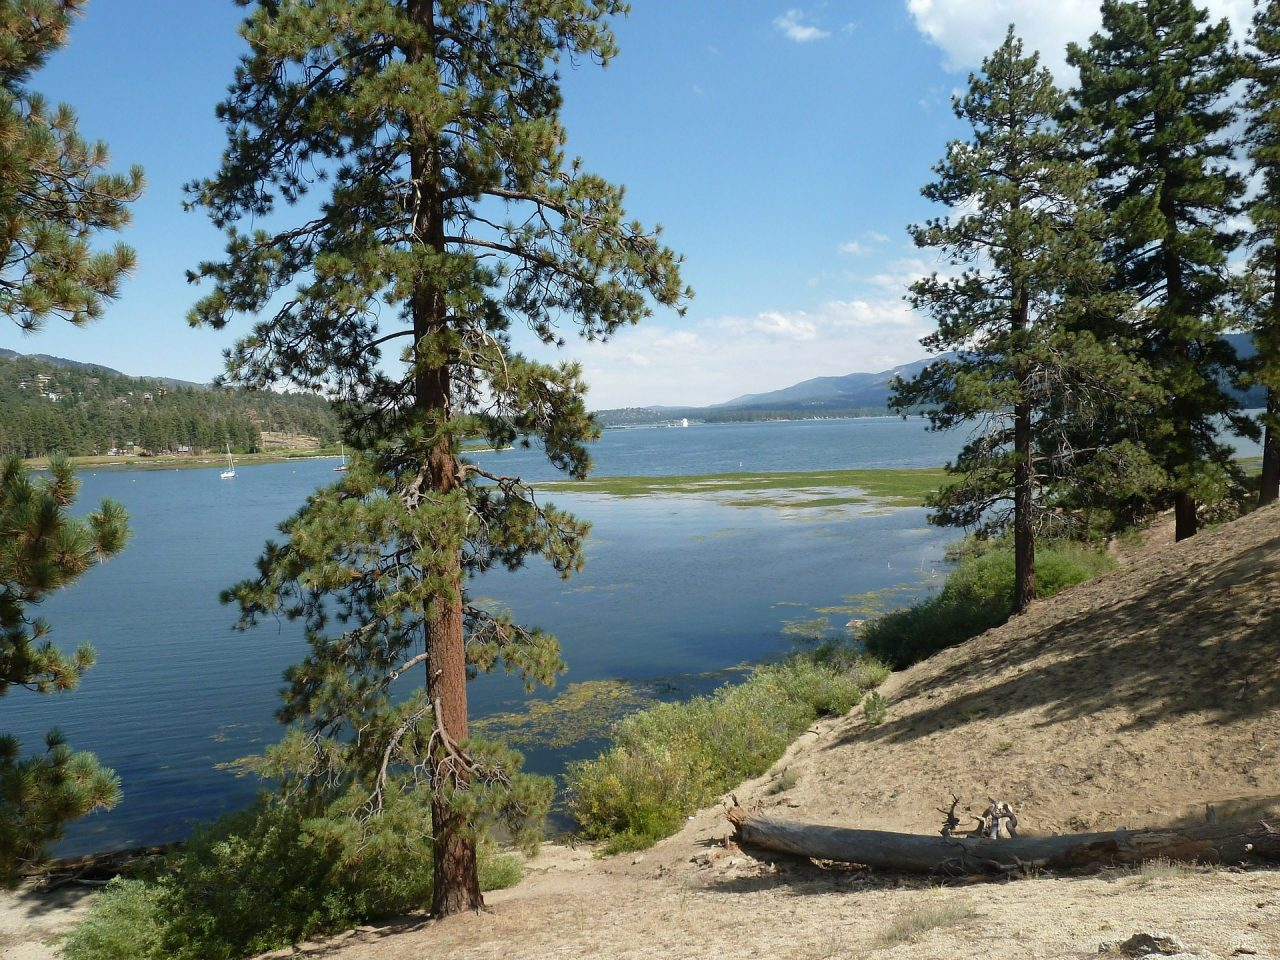 America's Small Towns: Big Bear Lake